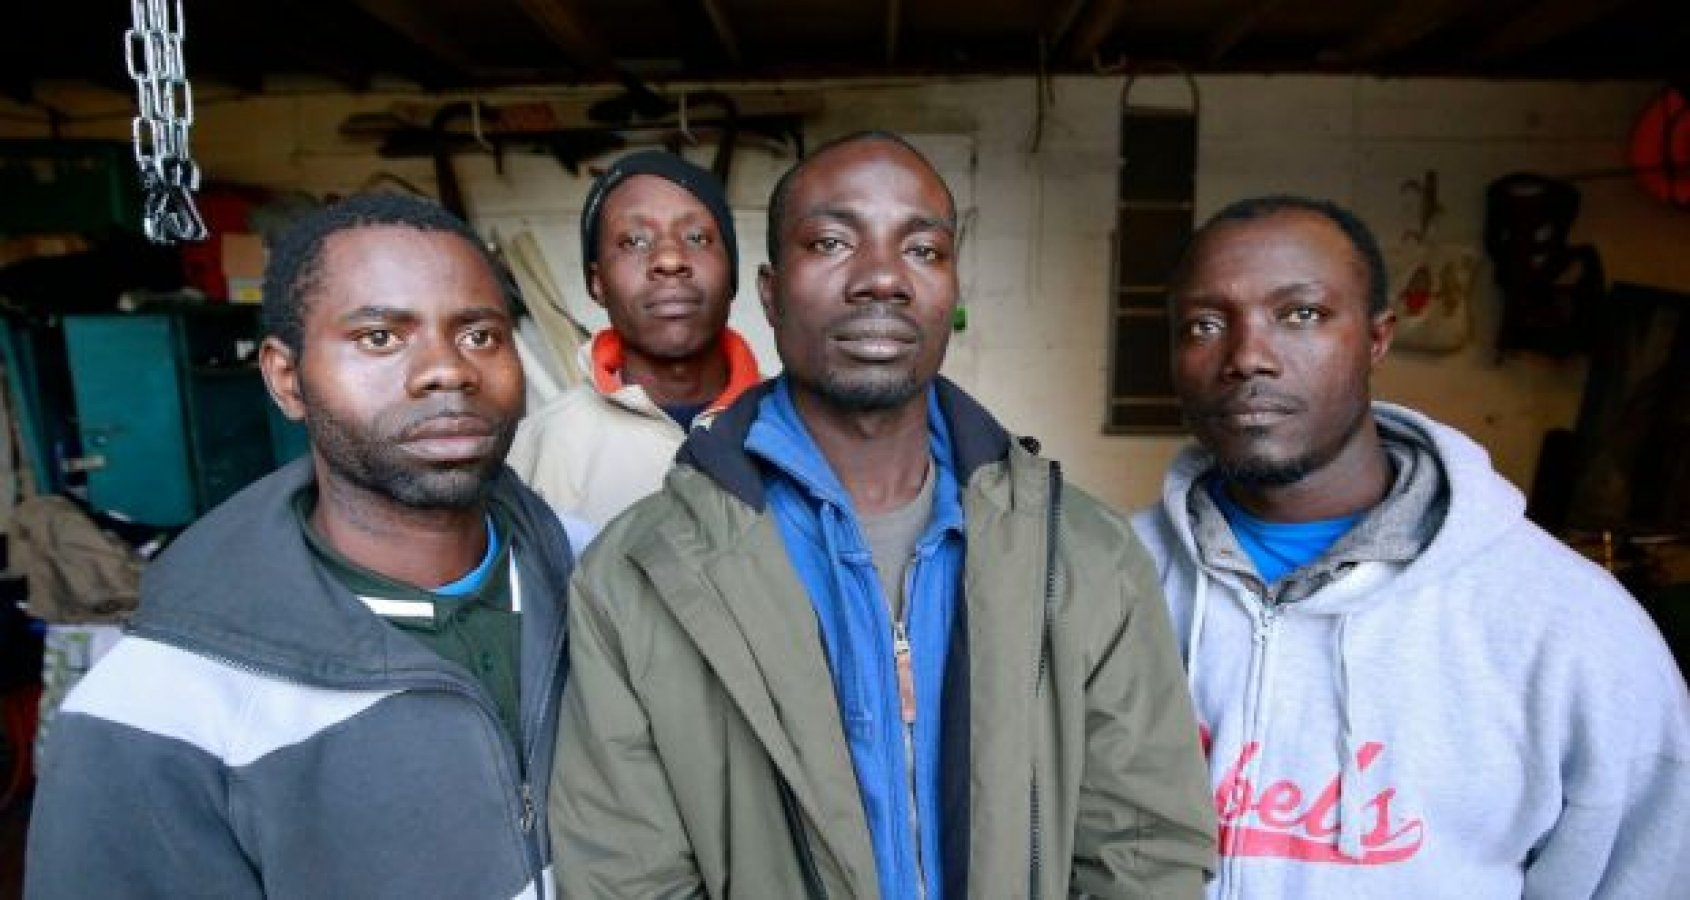 Ghanian fisher Joshua Baafi (second from left) said he is hopeful Ireland's parliament can get answers from officials who were supposed to protect workers like him   (Credit: Nick Bradshaw / The Irish Times)